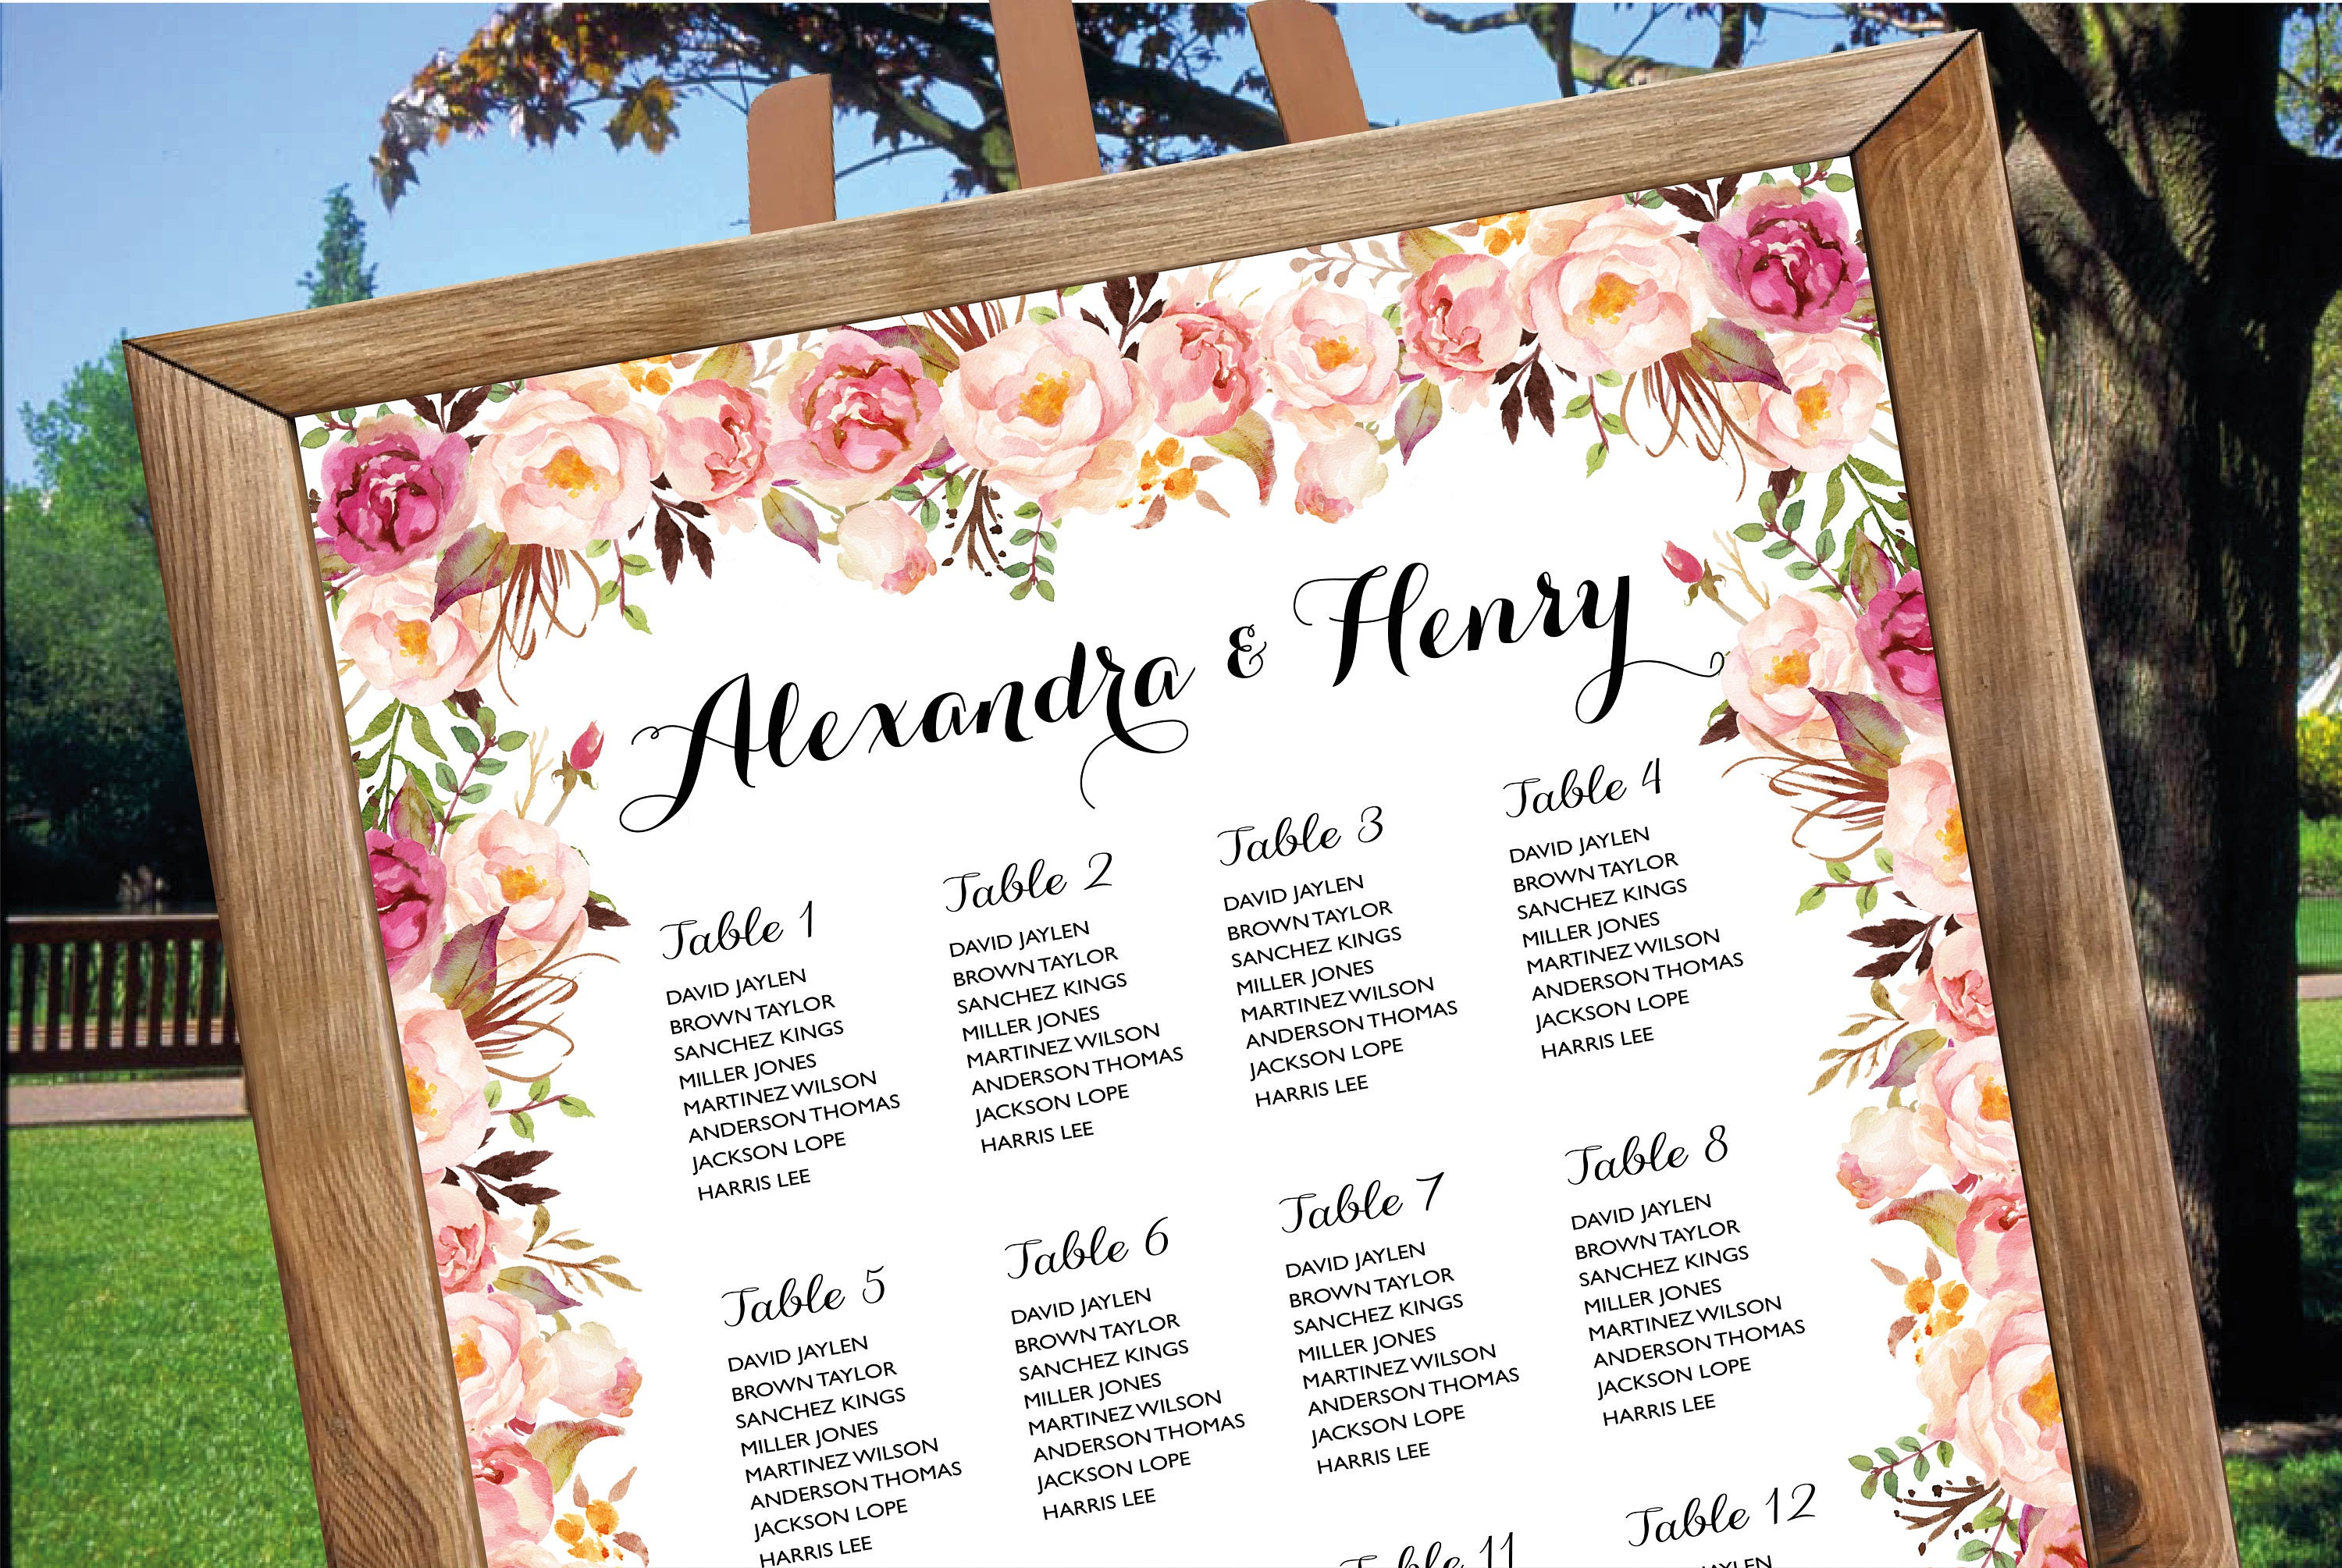 Wedding seating chart poster wedding seating chart wedding card wedding seating chart poster wedding seating chart wedding card wedding table seating junglespirit Image collections